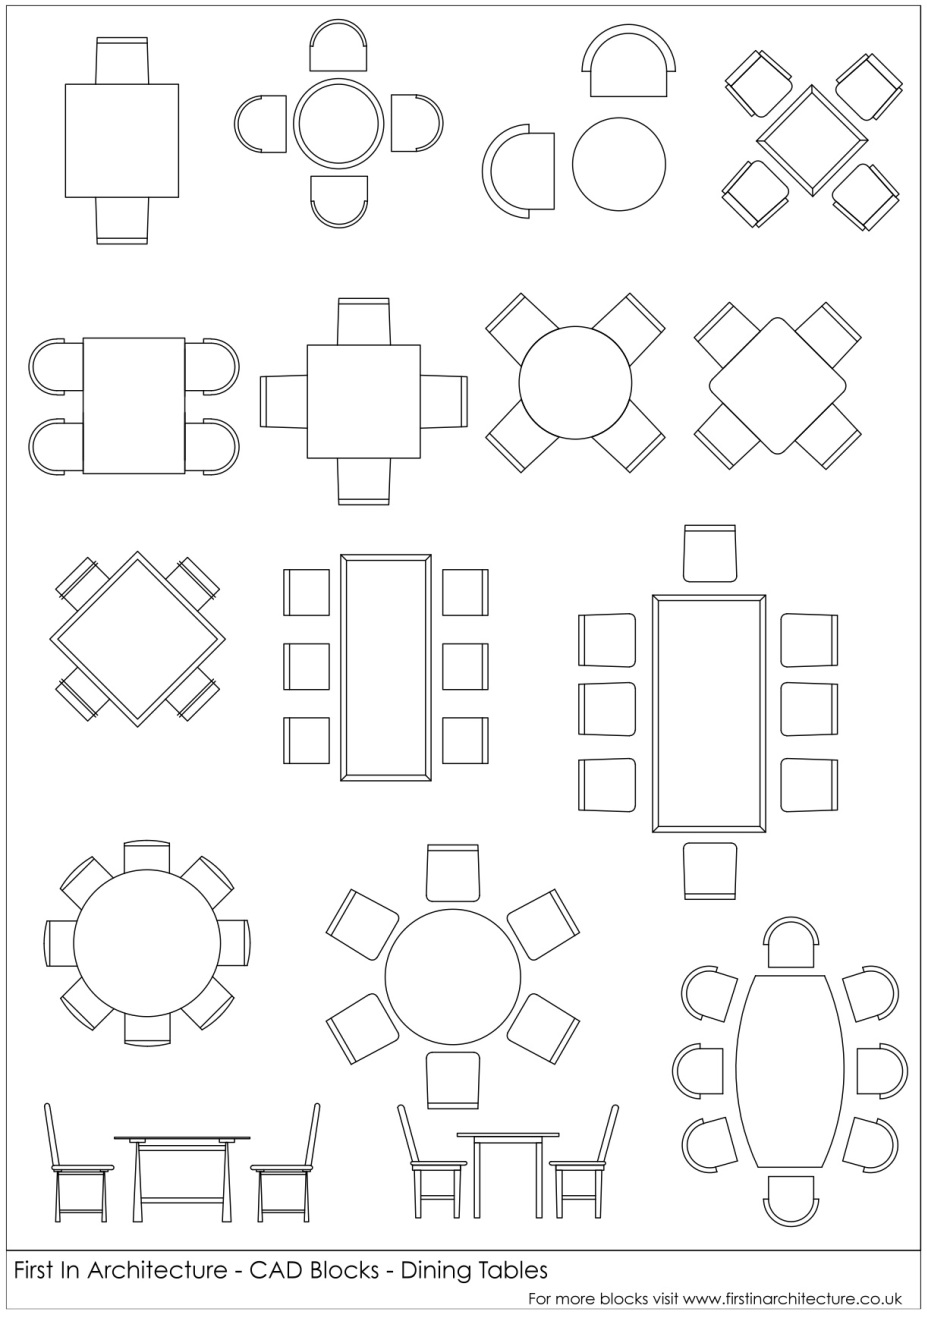 Floor Plan Symbols For Windows And Doors | Flisol Home